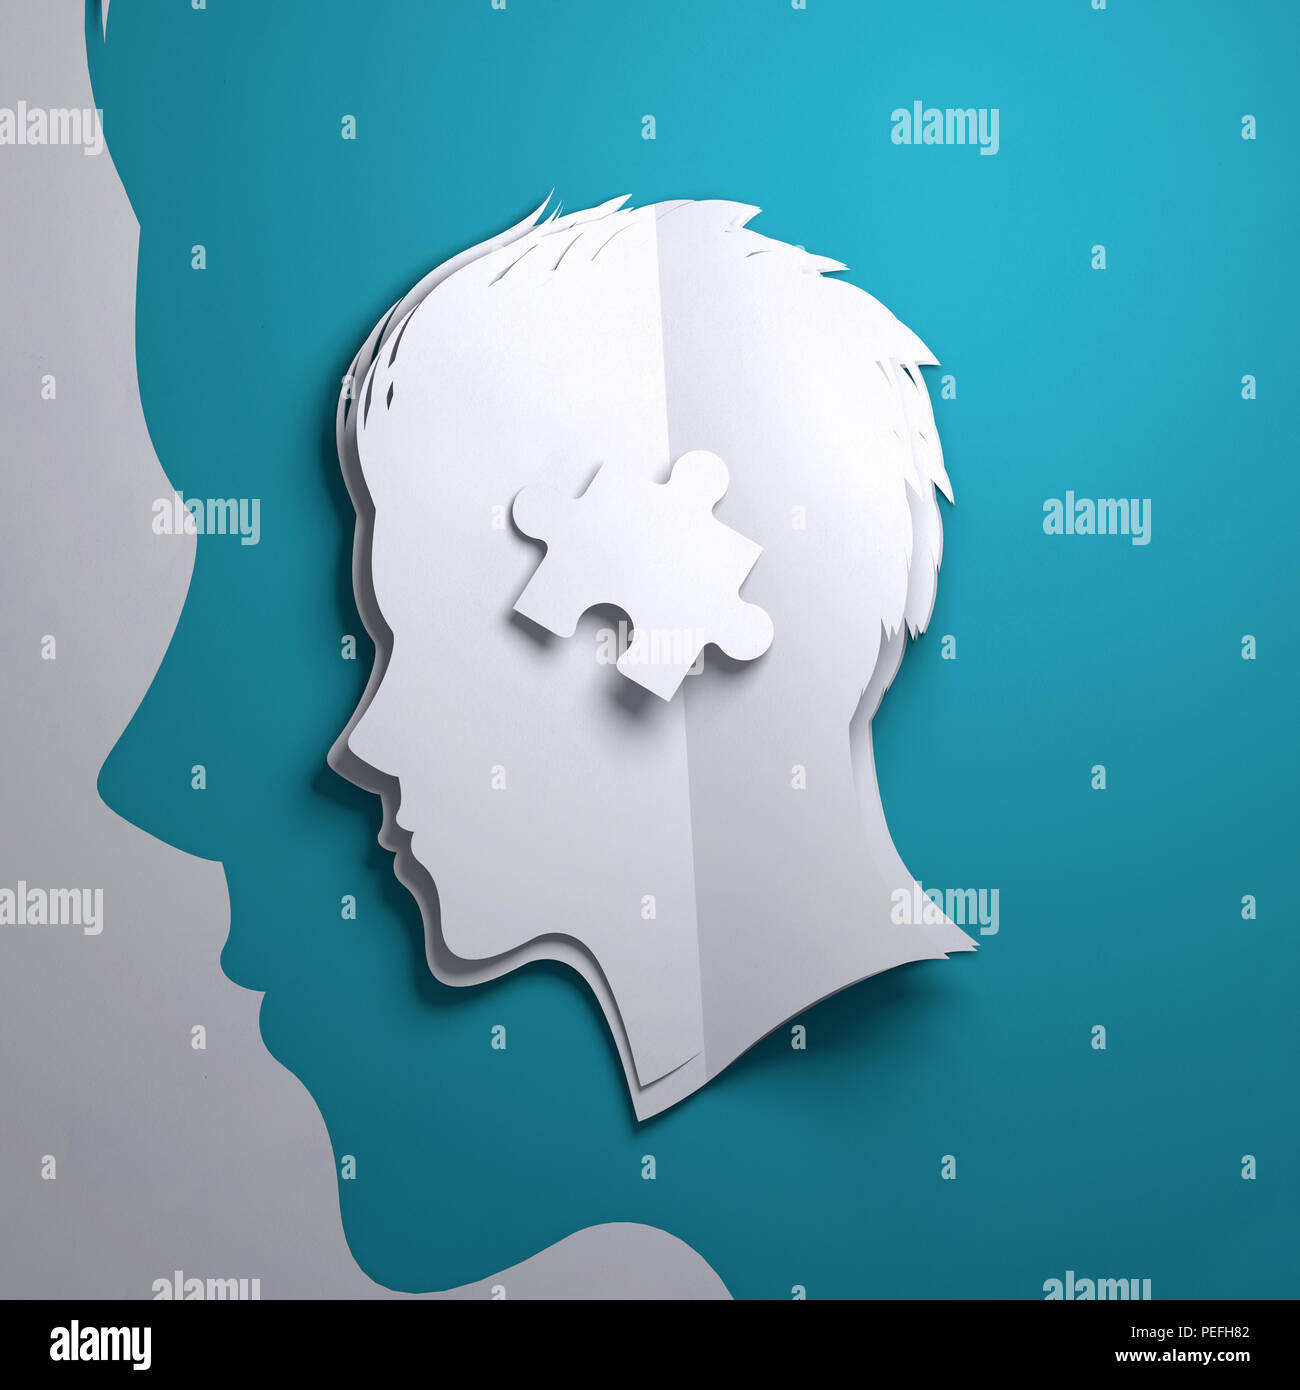 Folded Paper art origami. A silhouette of a persons head with a puzzle piece. Conceptual mindfulness 3D illustration. Stock Photo